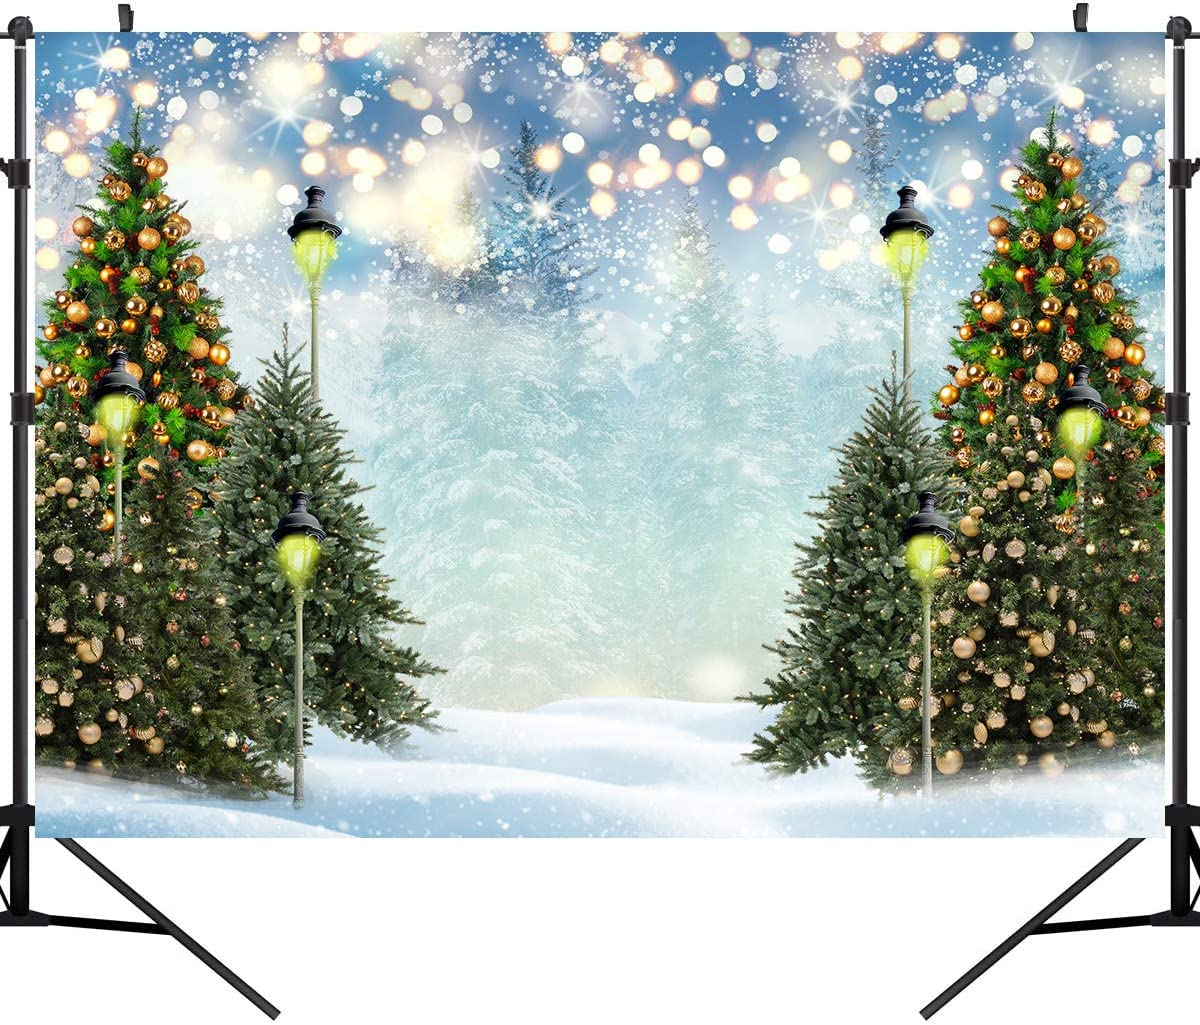 DULUDA Christmas Tree Photography Backdrop for Portrait Winter Snow Bokeh Lamp Green Pine Xmas Background Photographer Decors Photo Studio Booth Prop 7X5FT XM67A